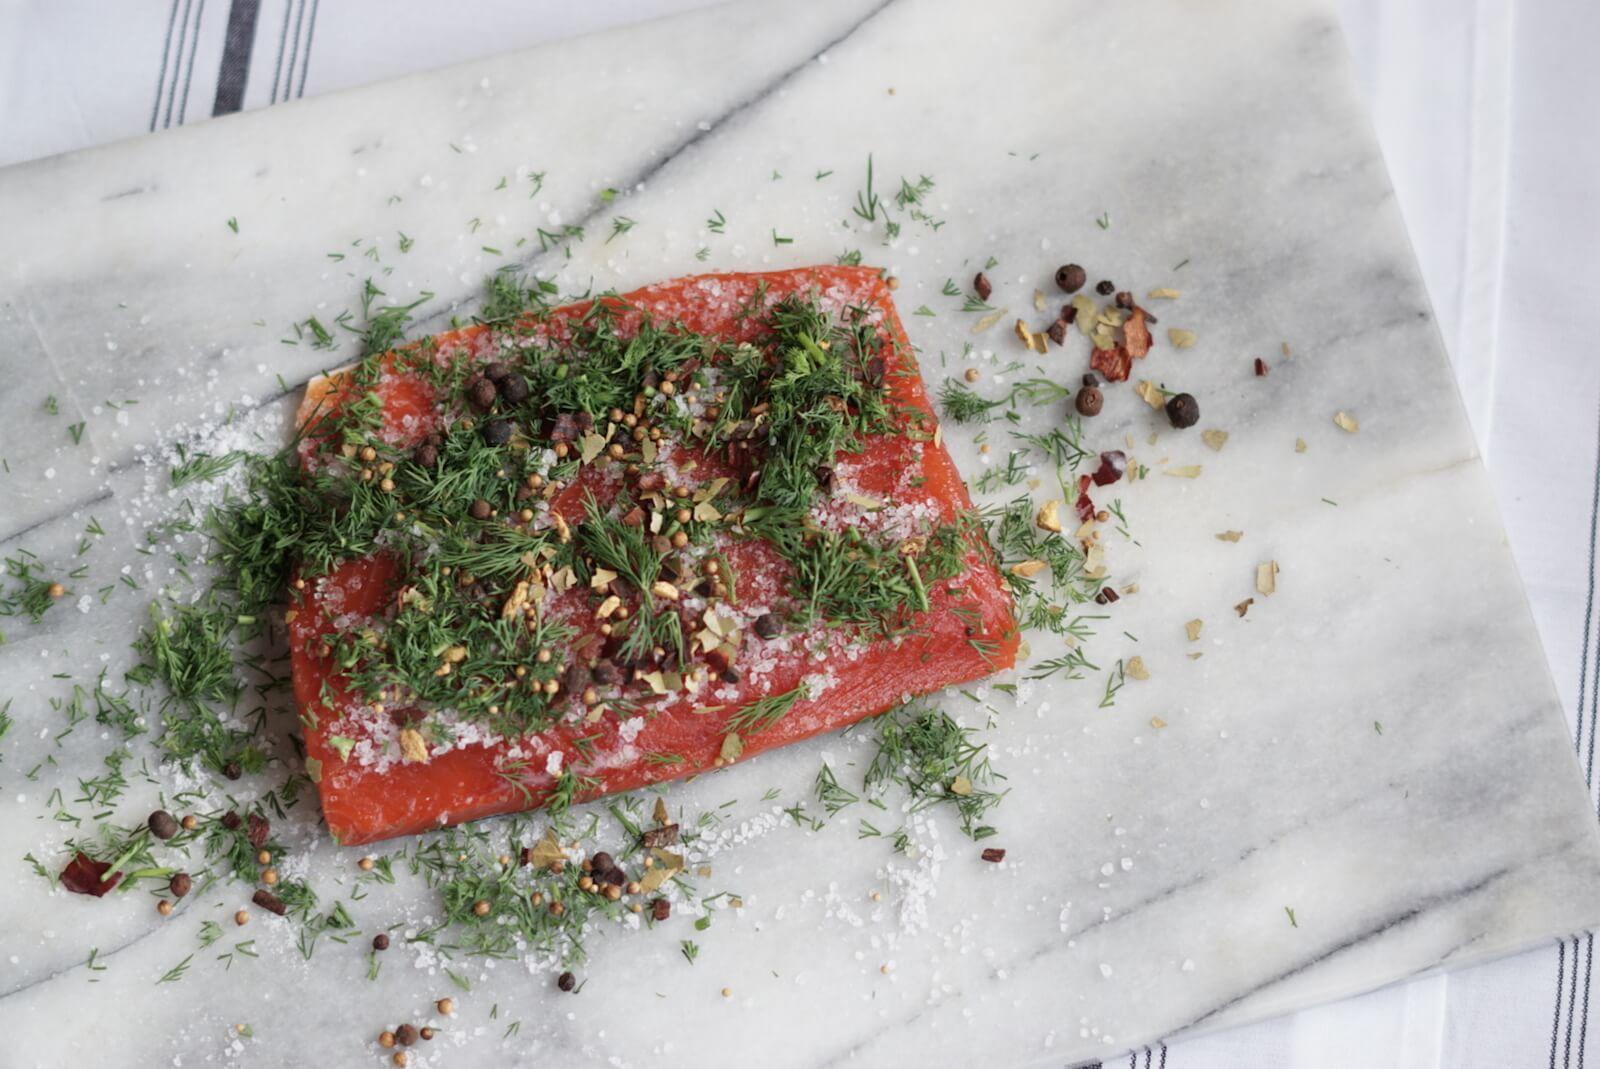 Gravlax is a type of cured salmon found in Scandinavia